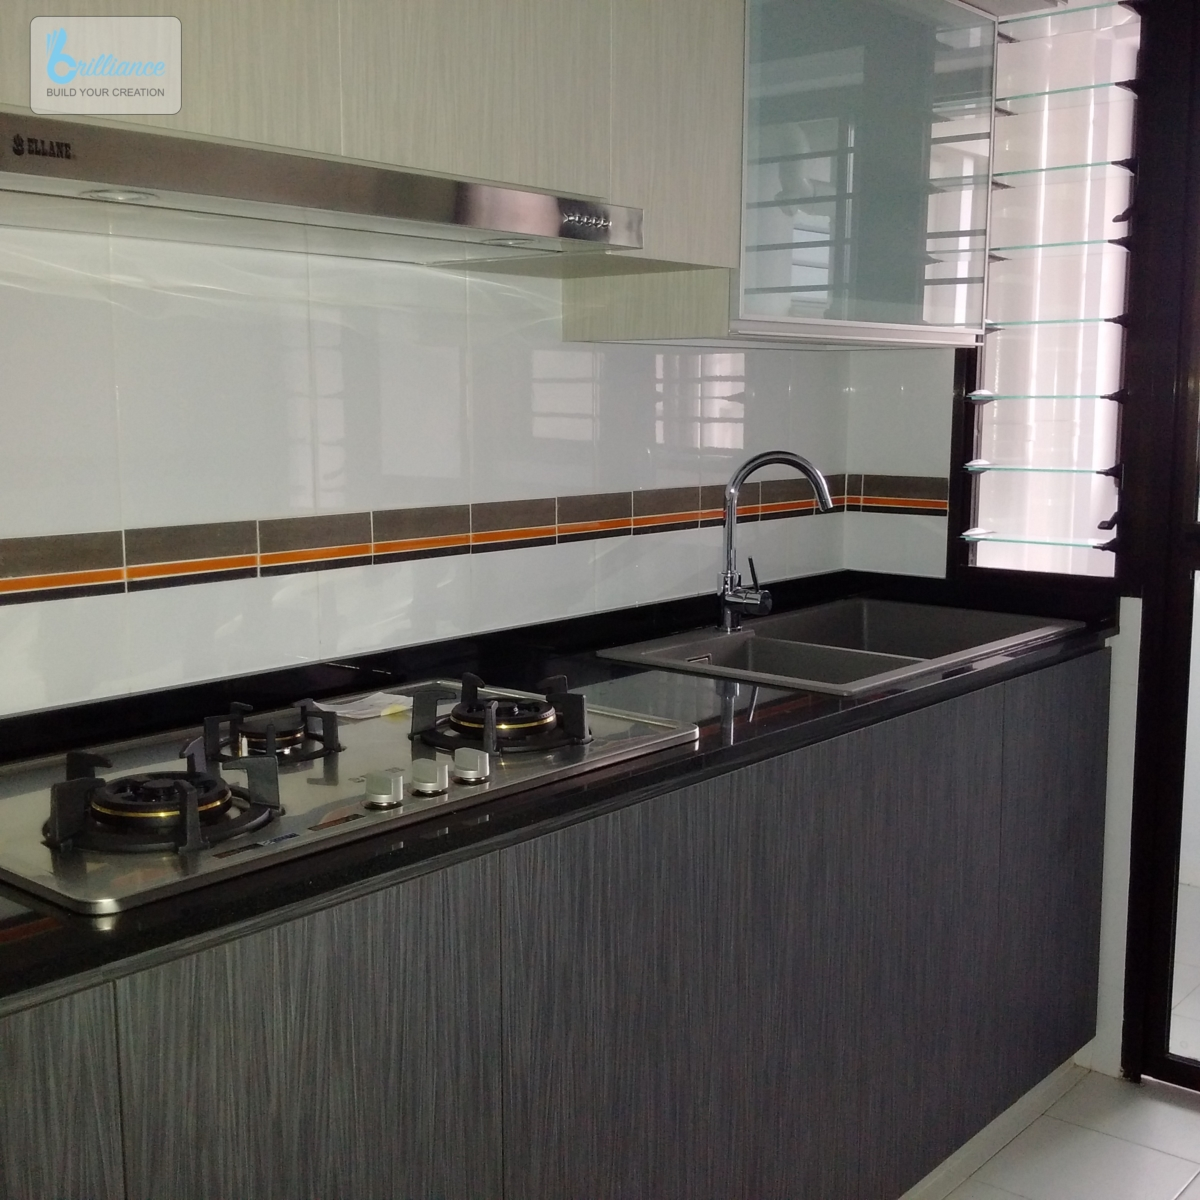 BTO Renovation by brilliance- Segar Road - kitchen view